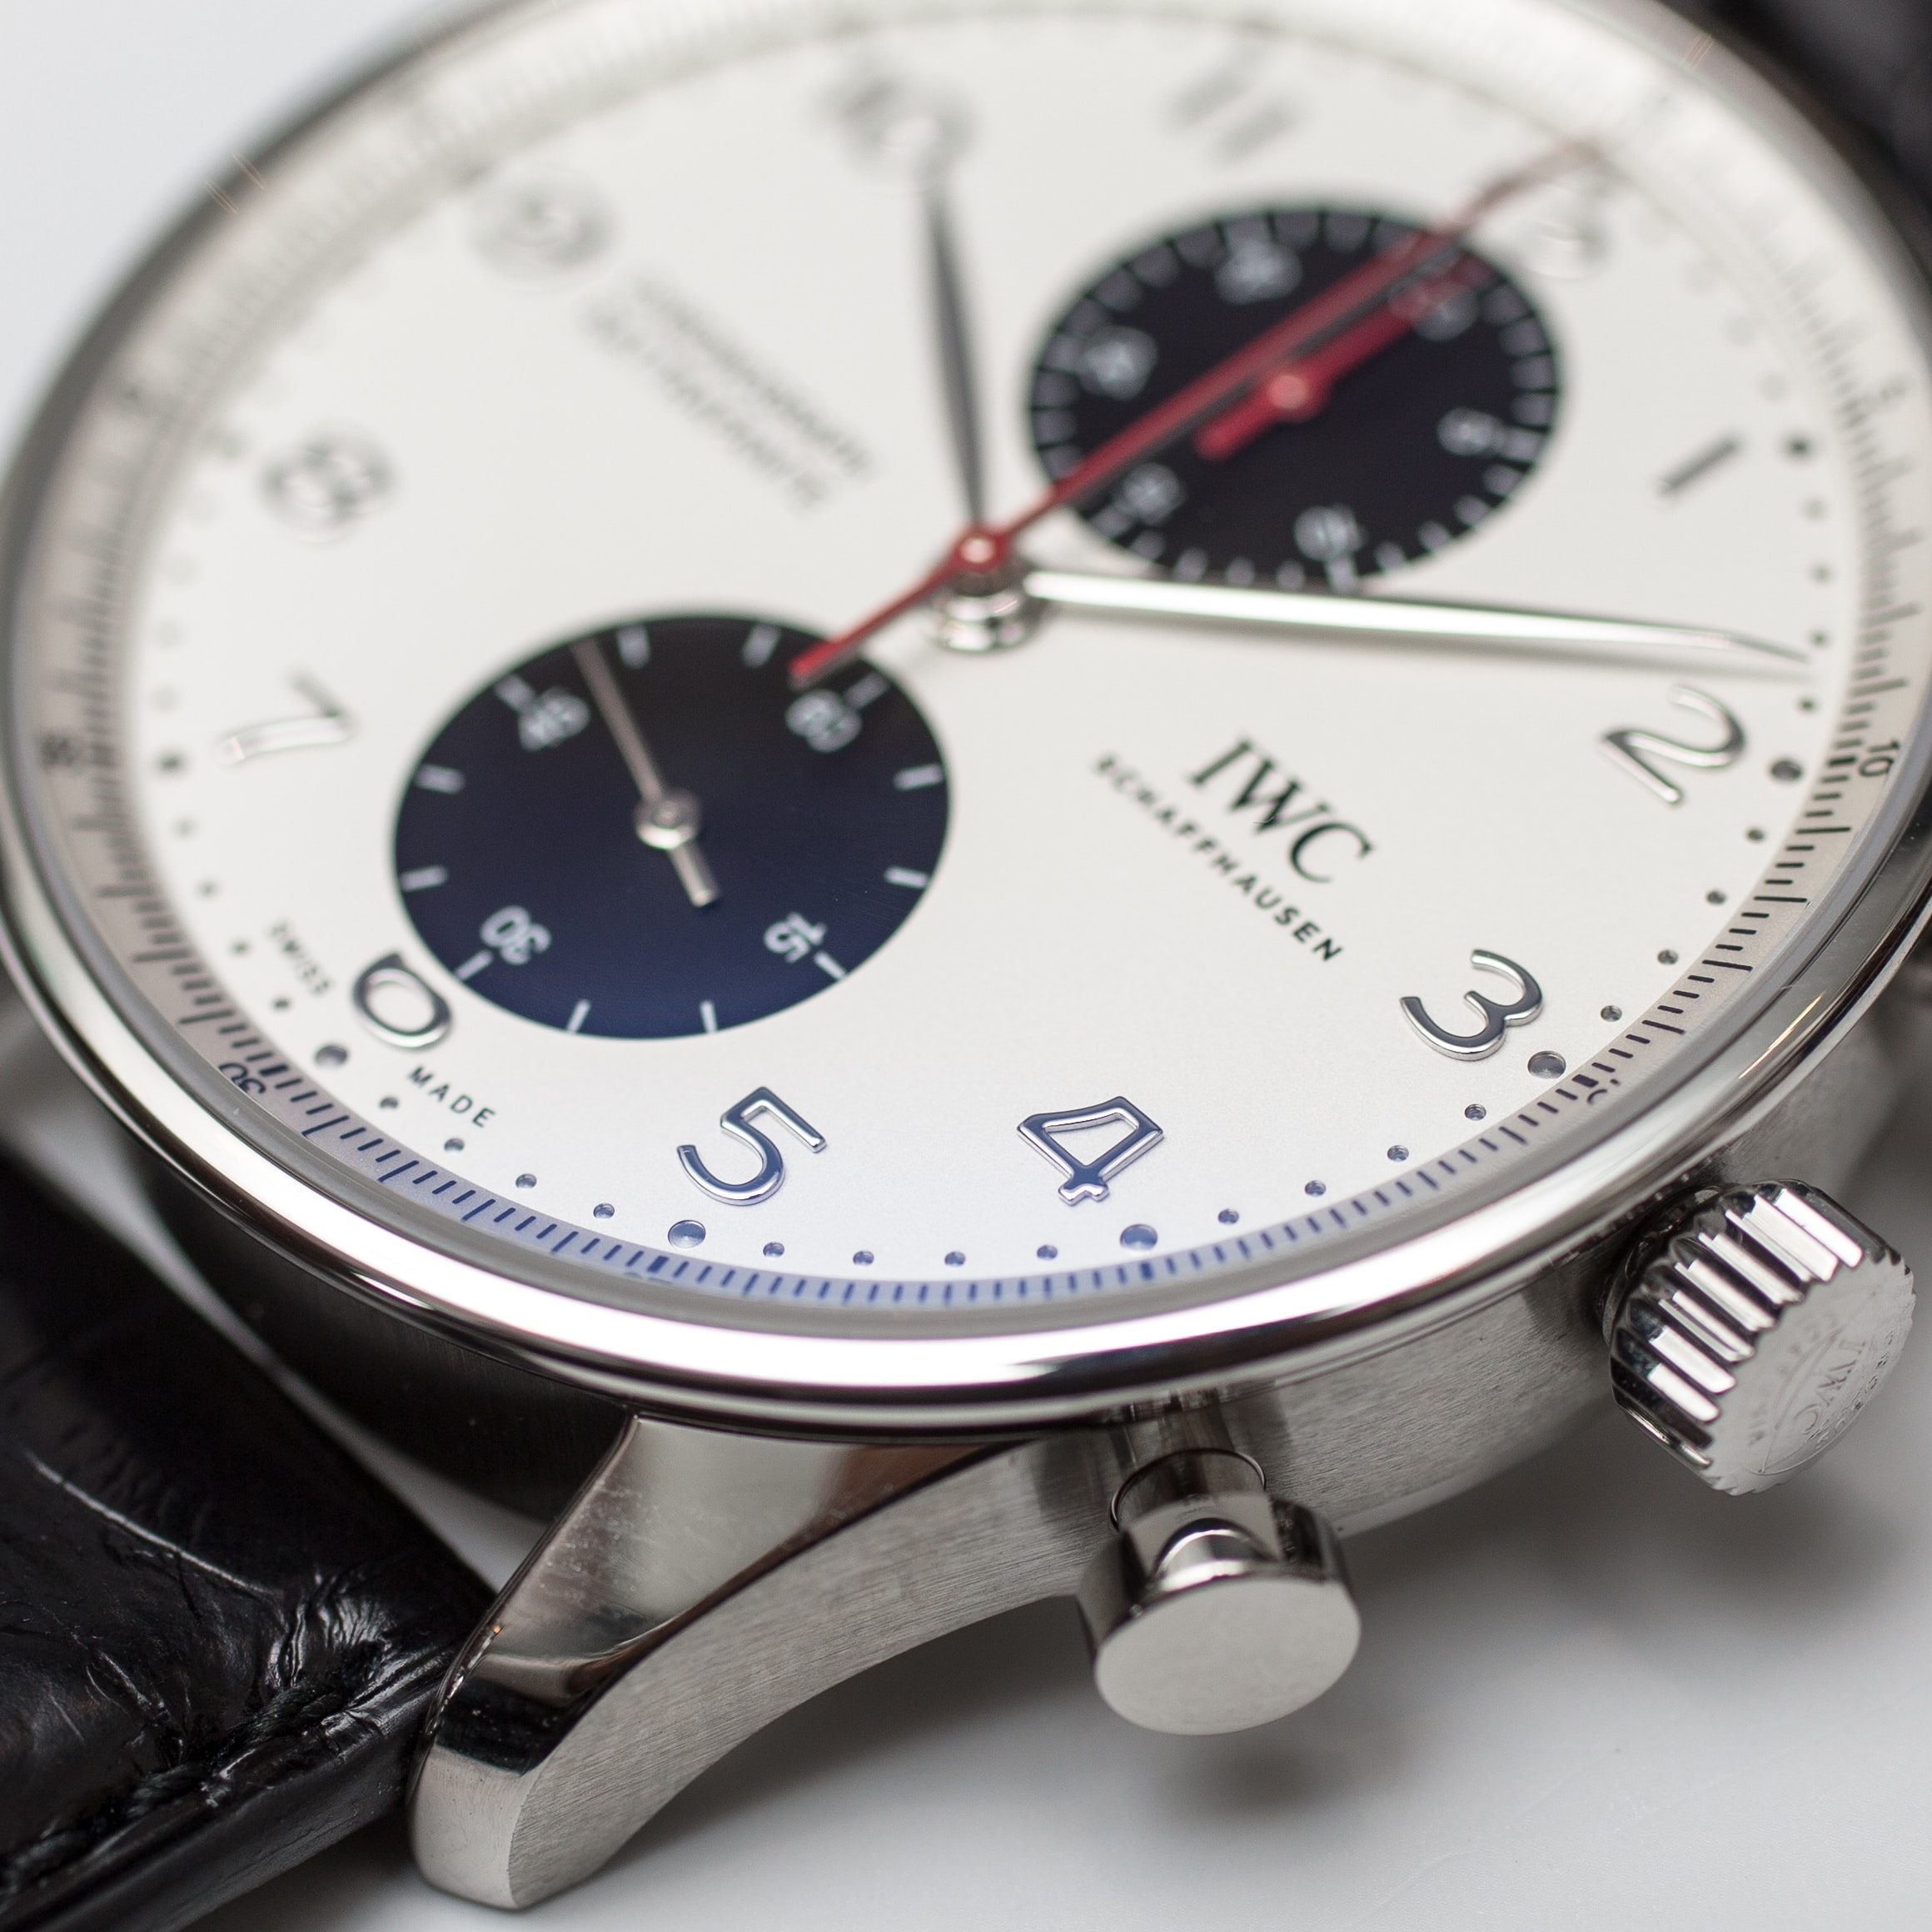 Hands-On: With The IWC Portugieser Chronograph Rattrapante Edition Boutique Canada Hands-On: With The IWC Portugieser Chronograph Rattrapante Edition Boutique Canada IWC Portugieser Chronograph Rattrapante Canada Boutique 7